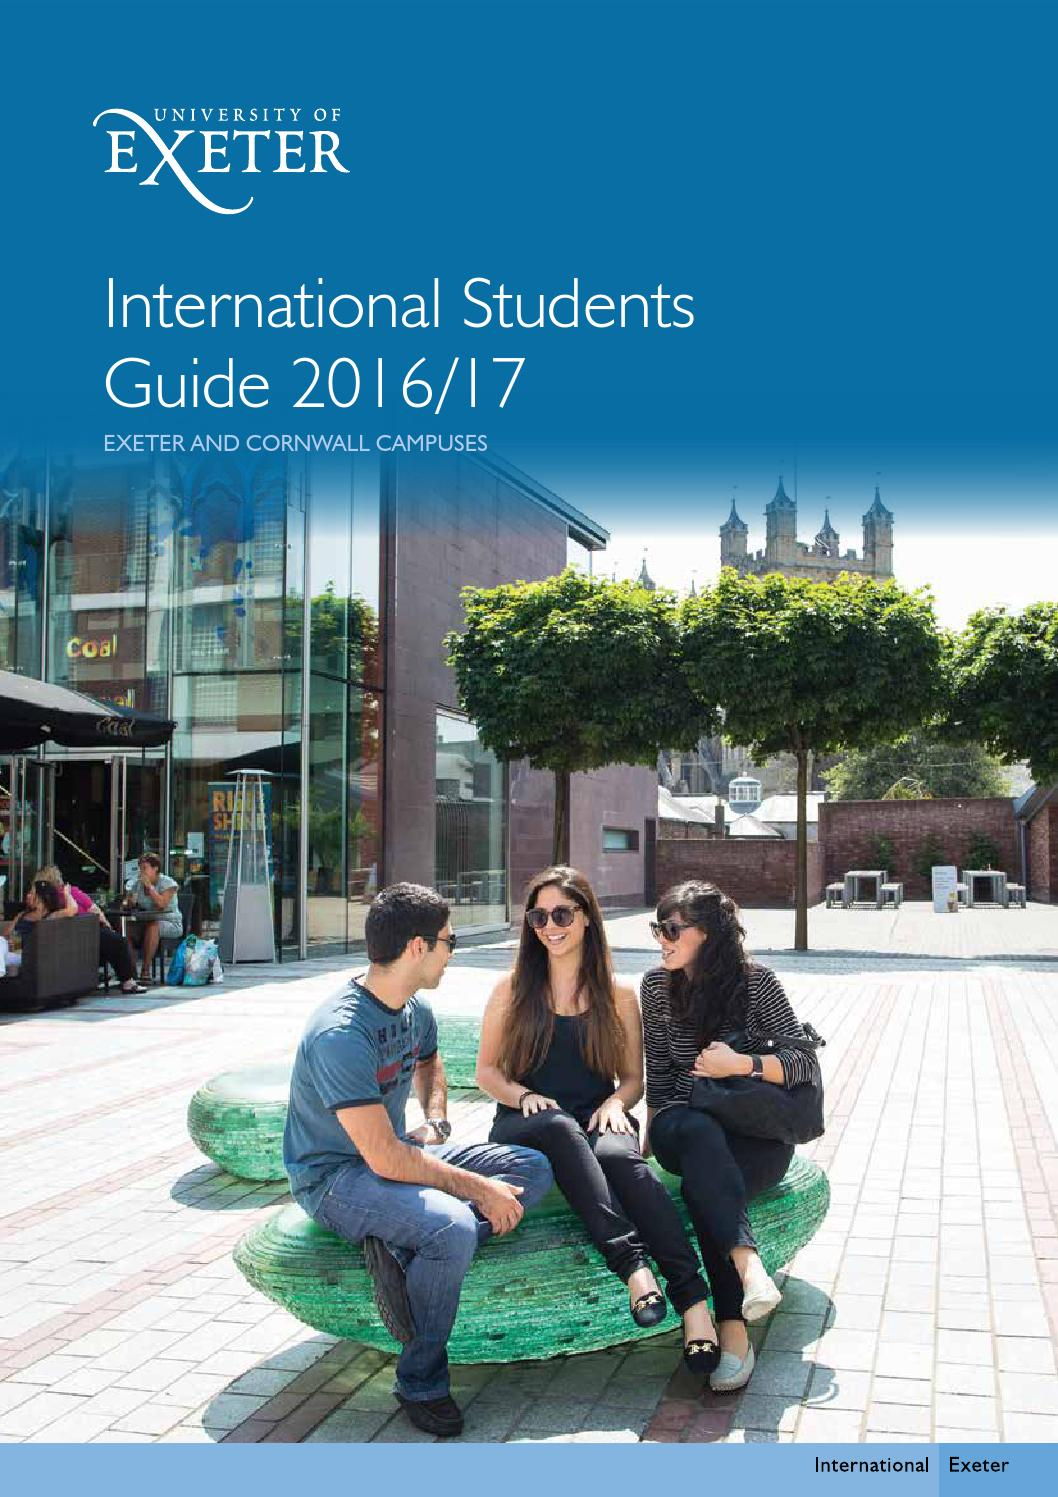 International Students Guide 201617 By University Of Exeter Issuu